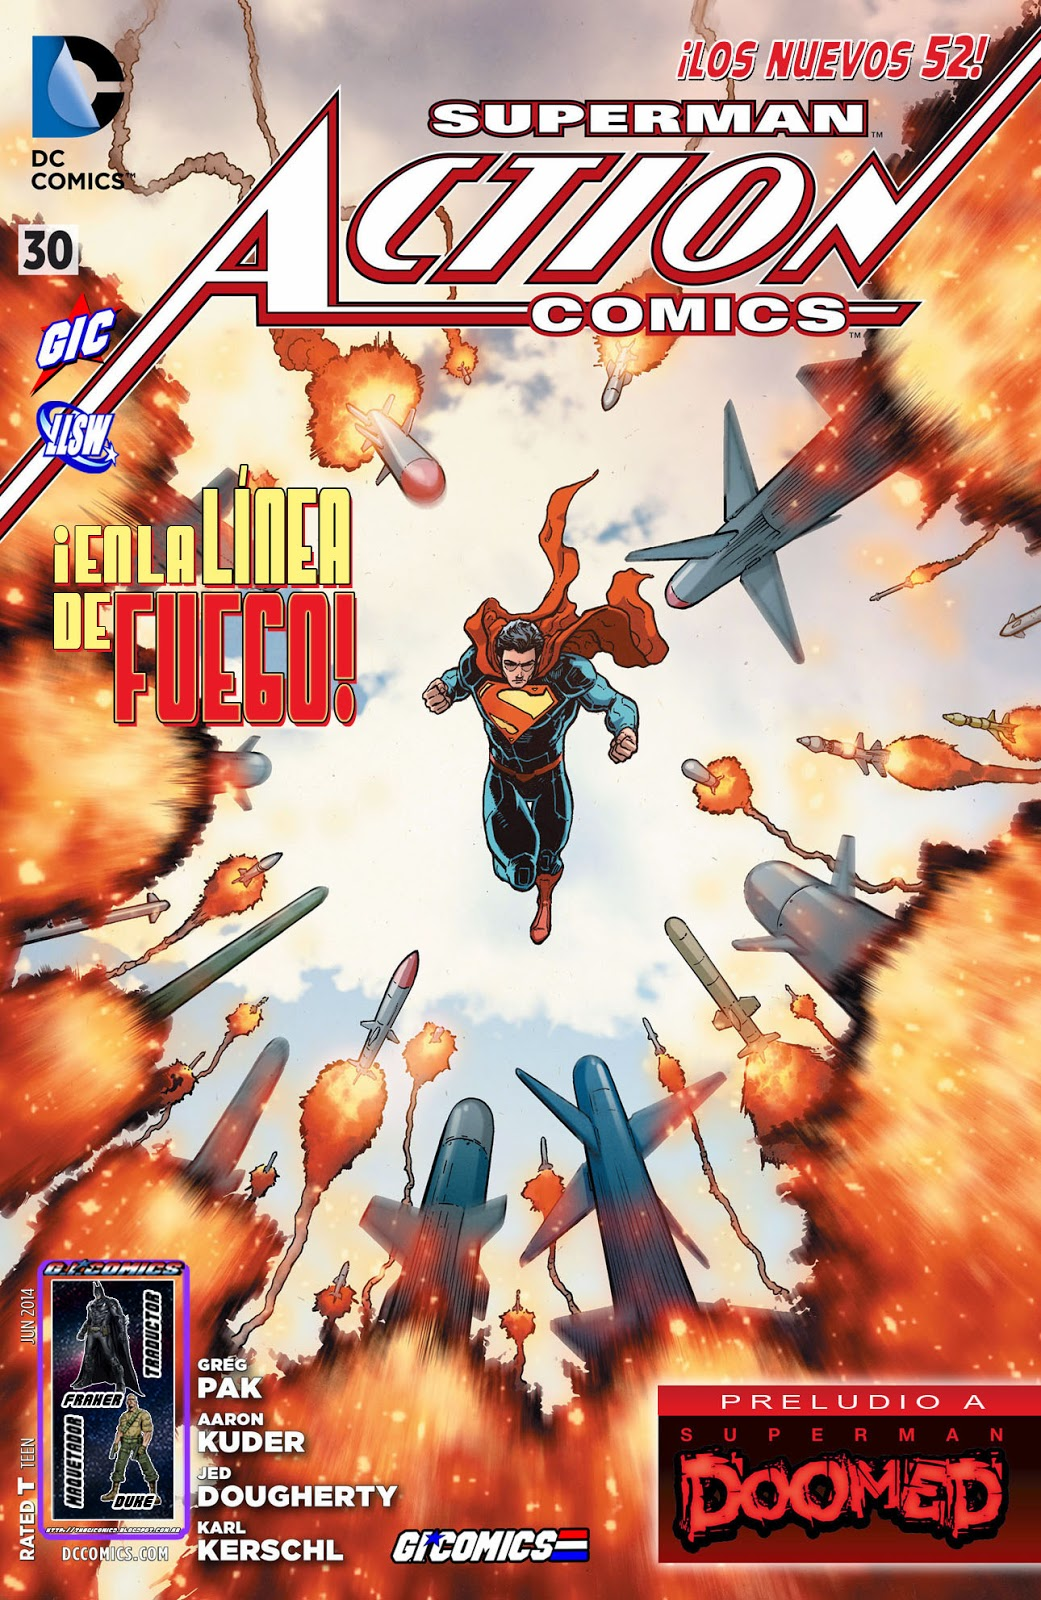 http://www.mediafire.com/download/yp7qnxar819onll/ACTION+COMICS+30+GI+COMICS-LLSW%28Fraher-Duke%29.cbr